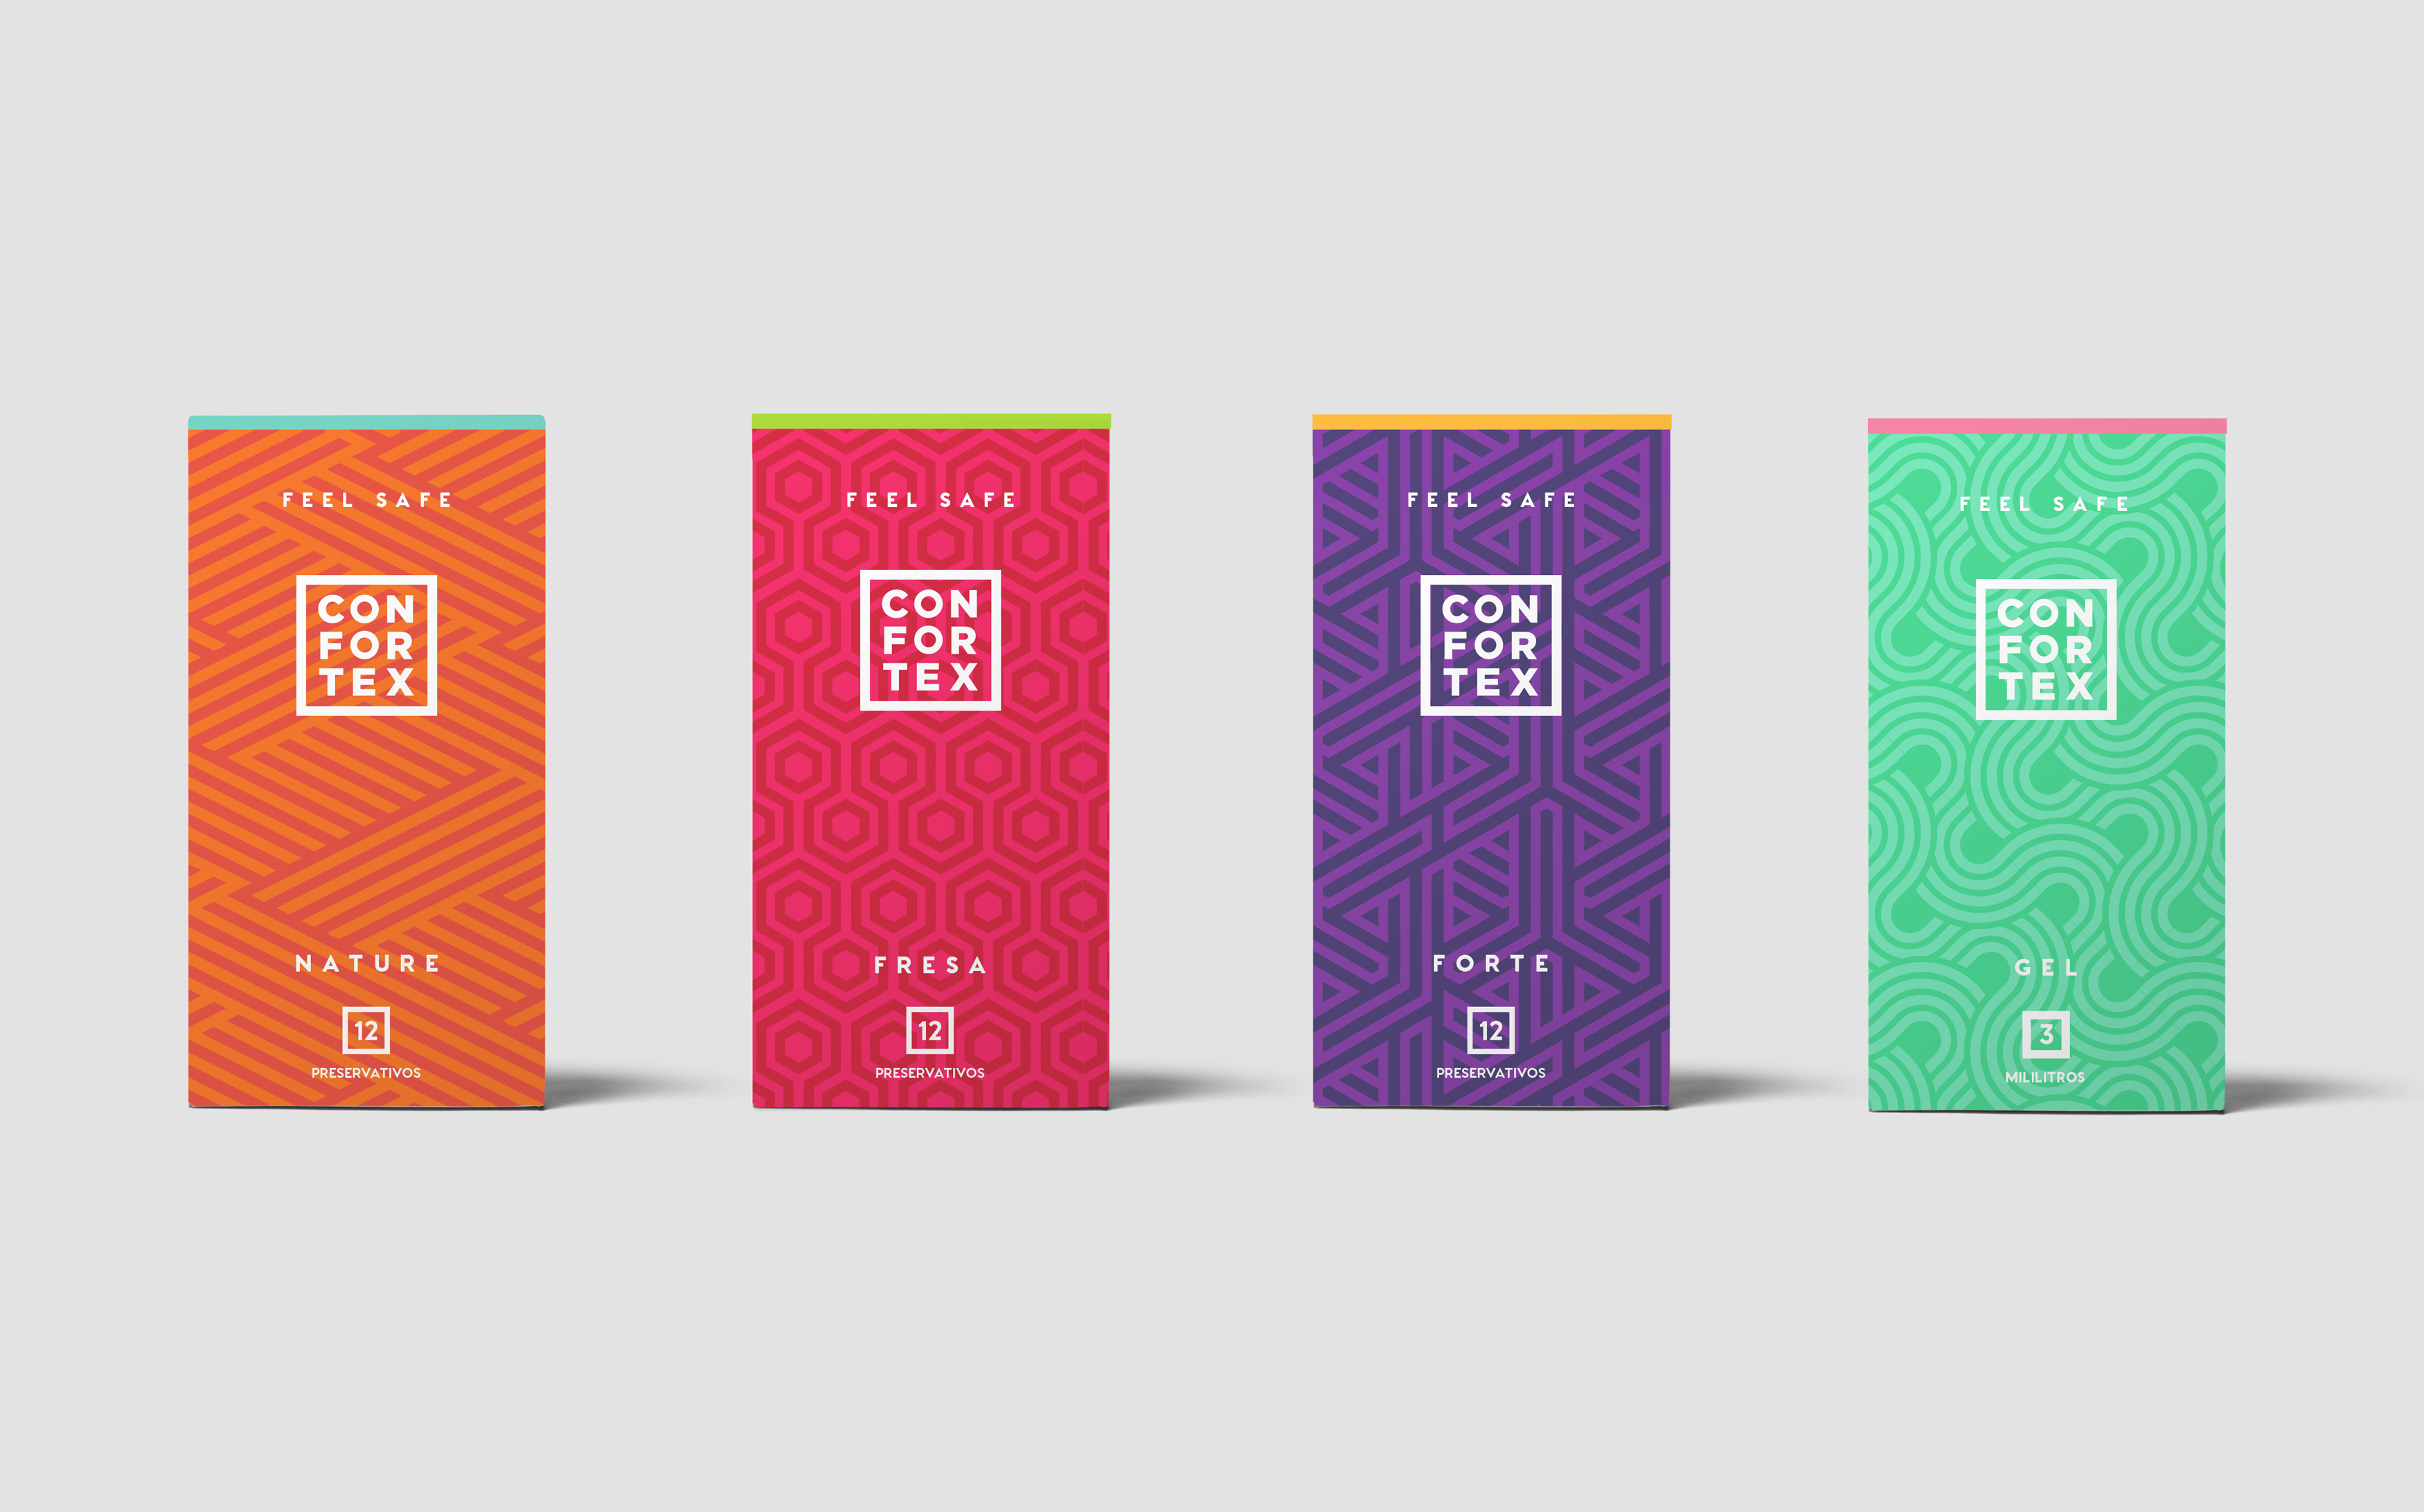 Confortex, proyecto de Branding & Packaging por The Woork Co